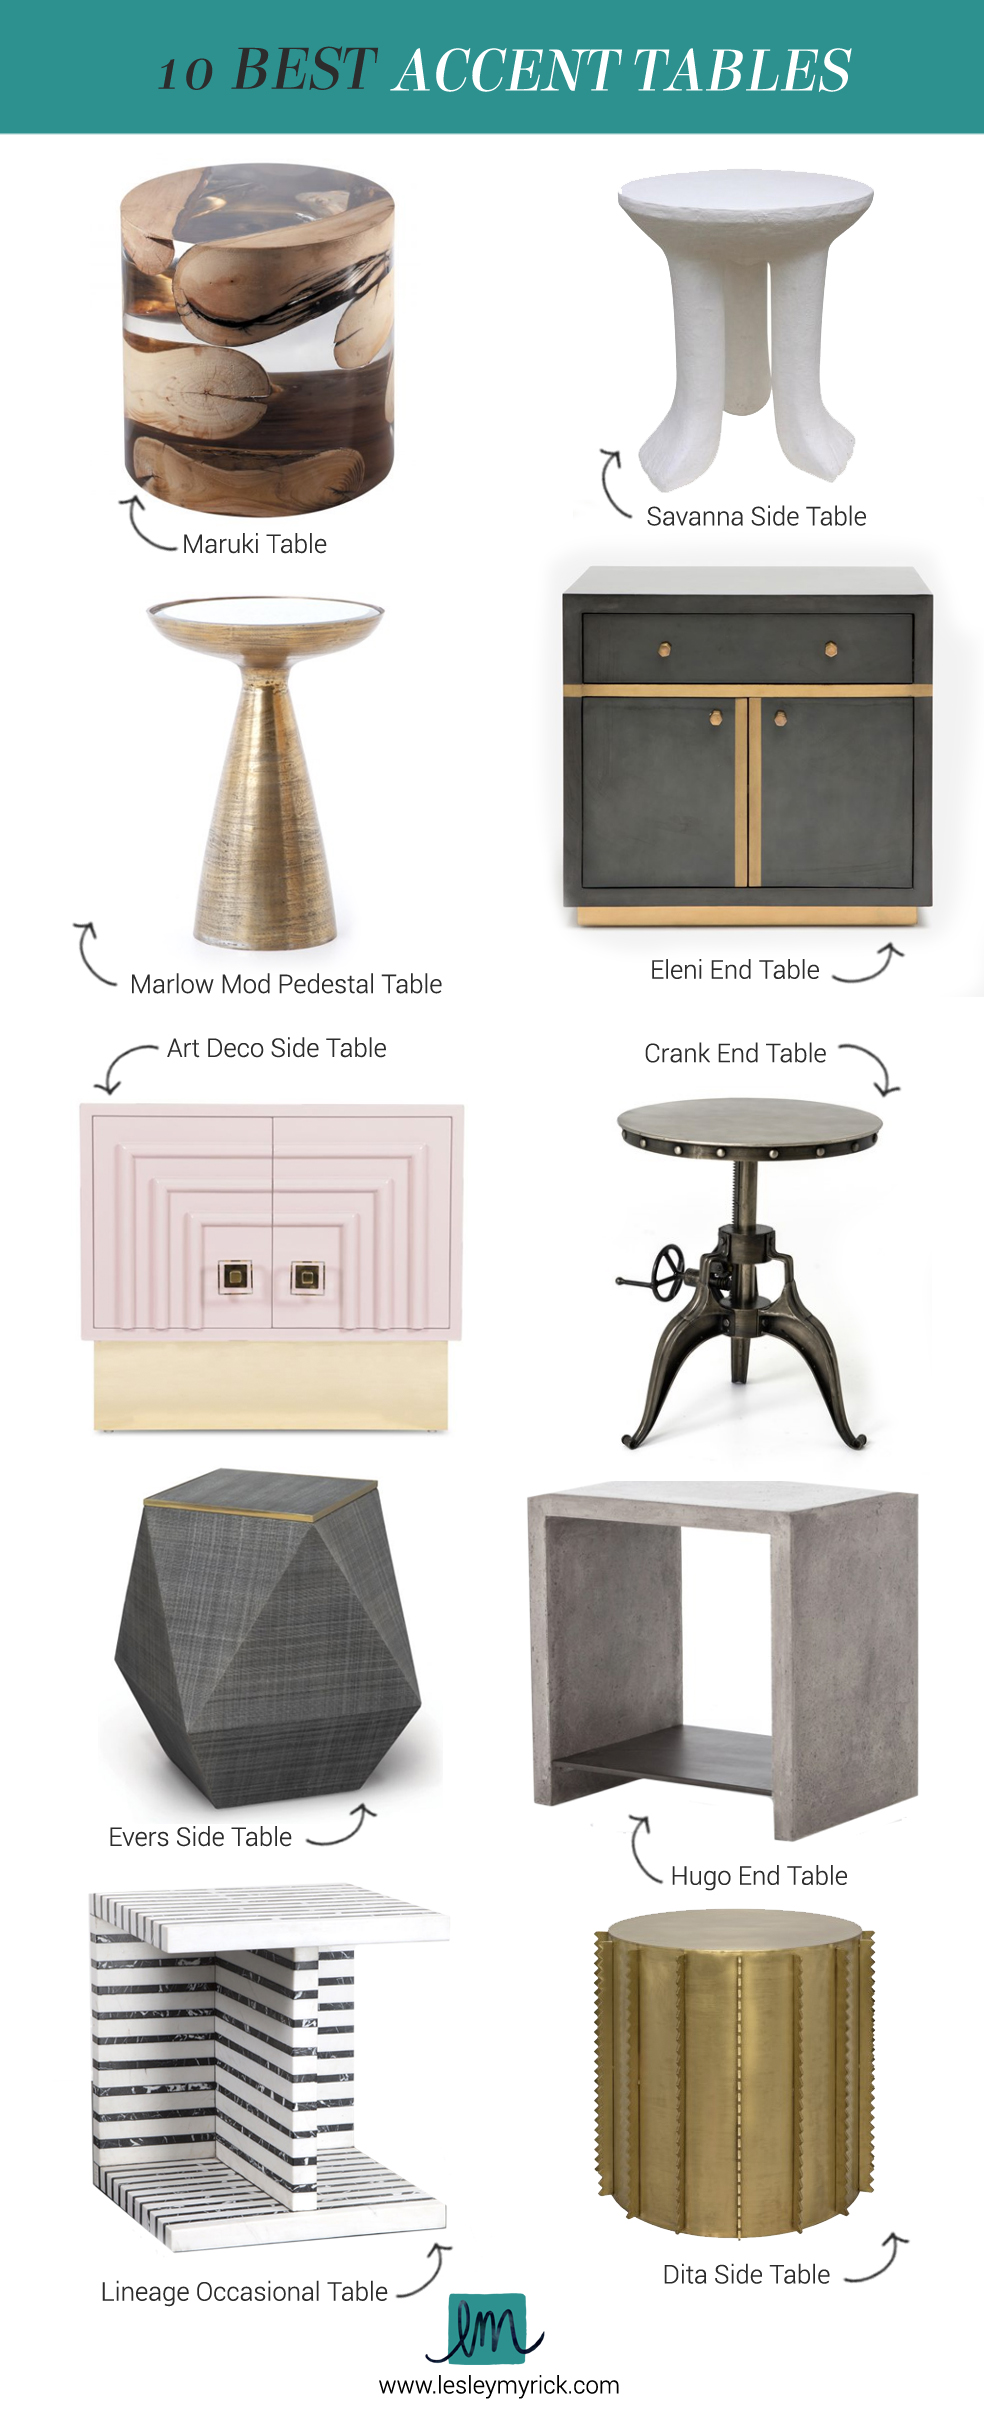 10 Best Accent Tables | Picks from Waco Interior Stylist Lesley Myrick